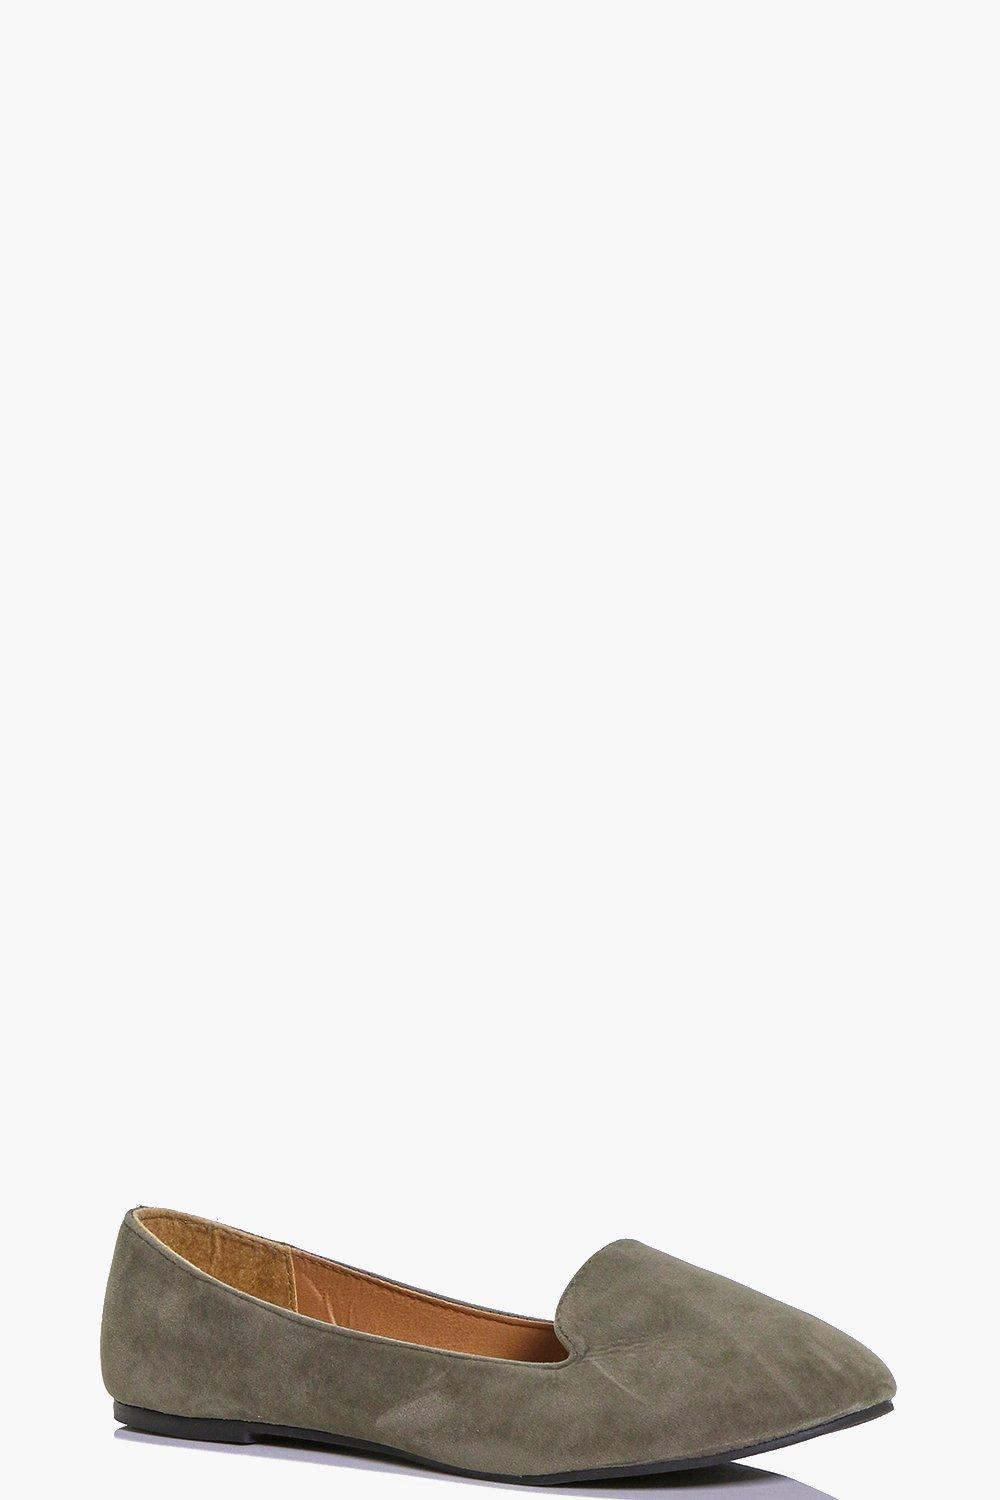 Lauren Suedette Tab Top Slipper Flats